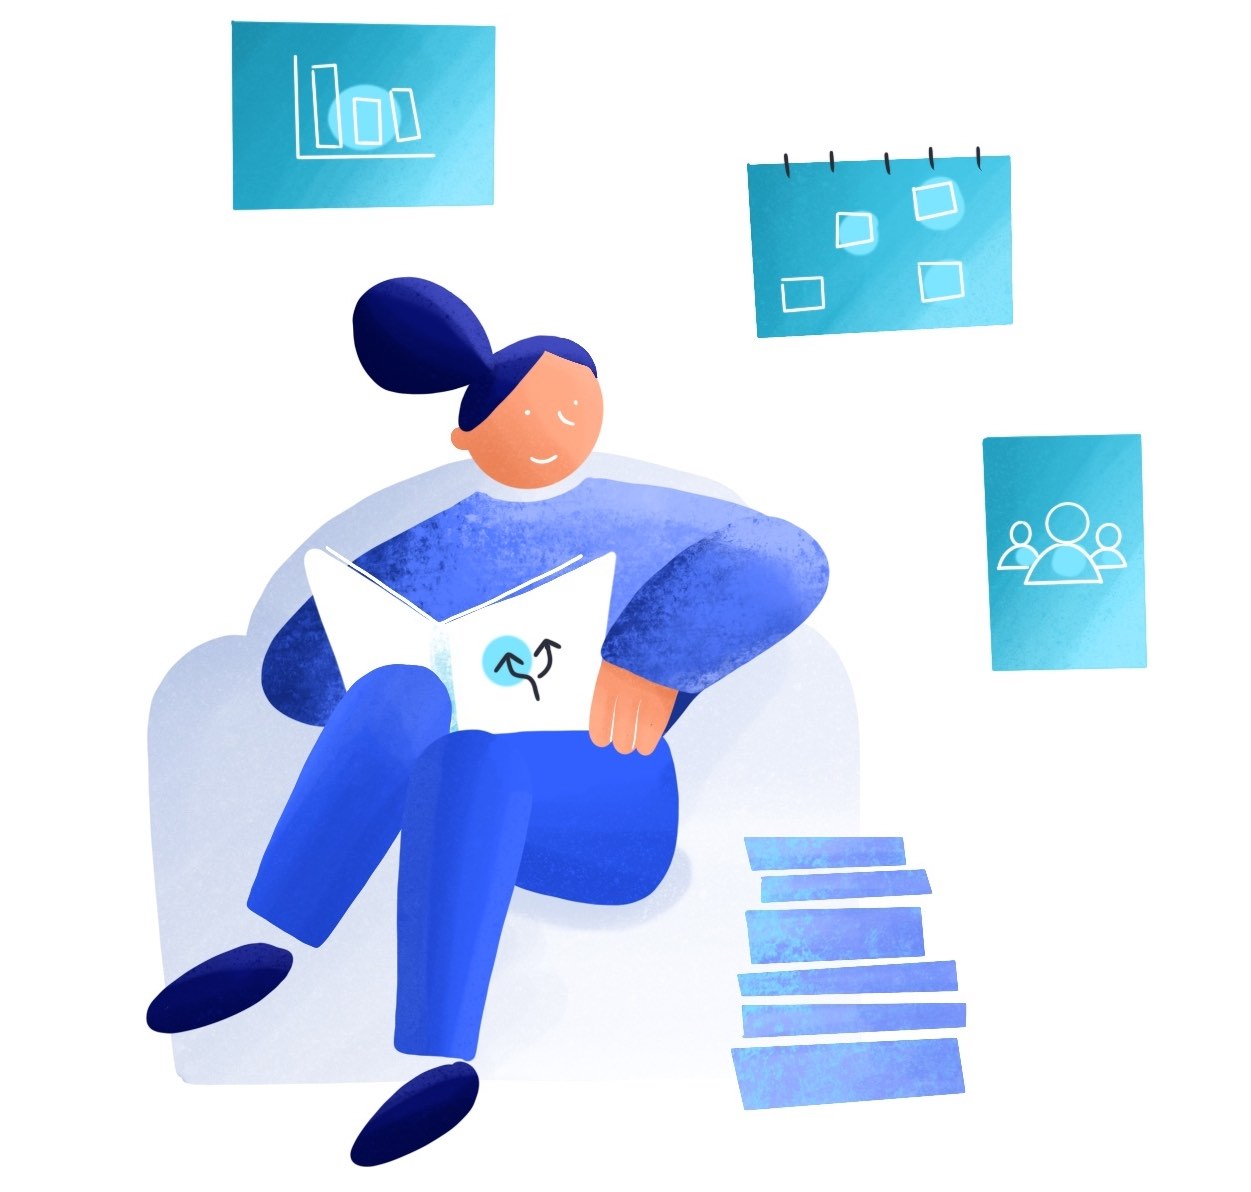 Illustration woman reading tools and templates about the 7 Principles Methodology